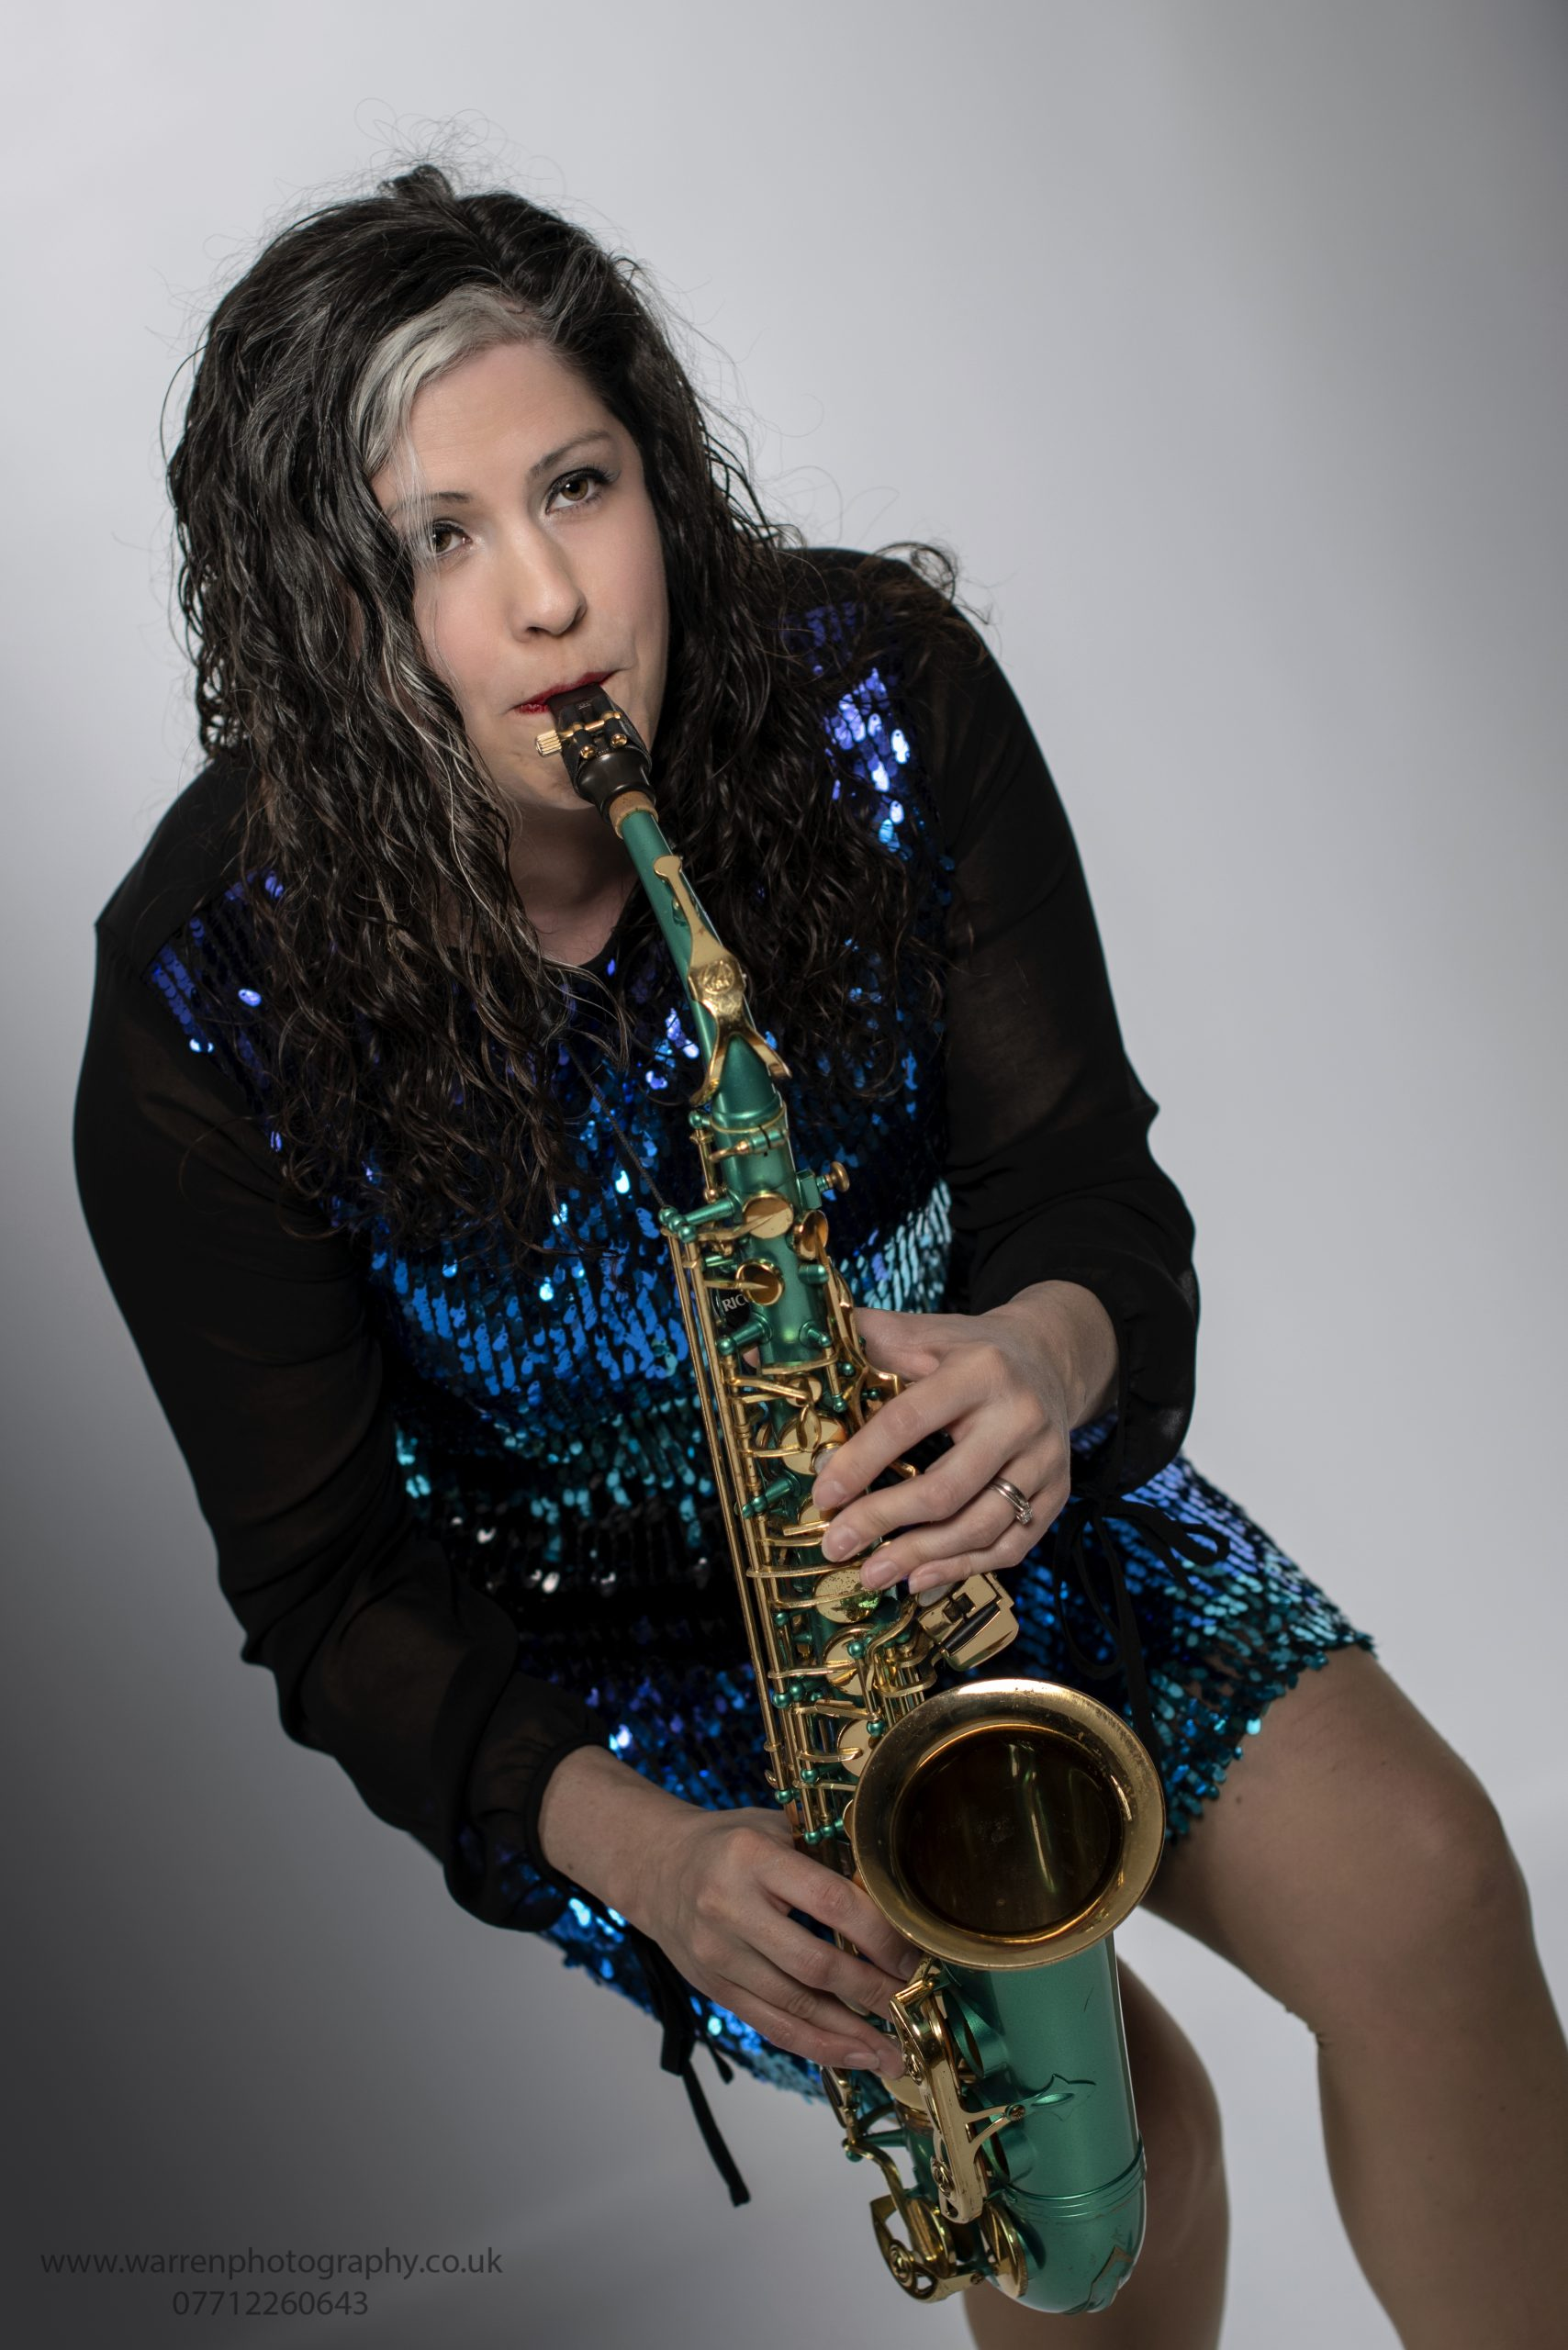 sax girl playing bent down